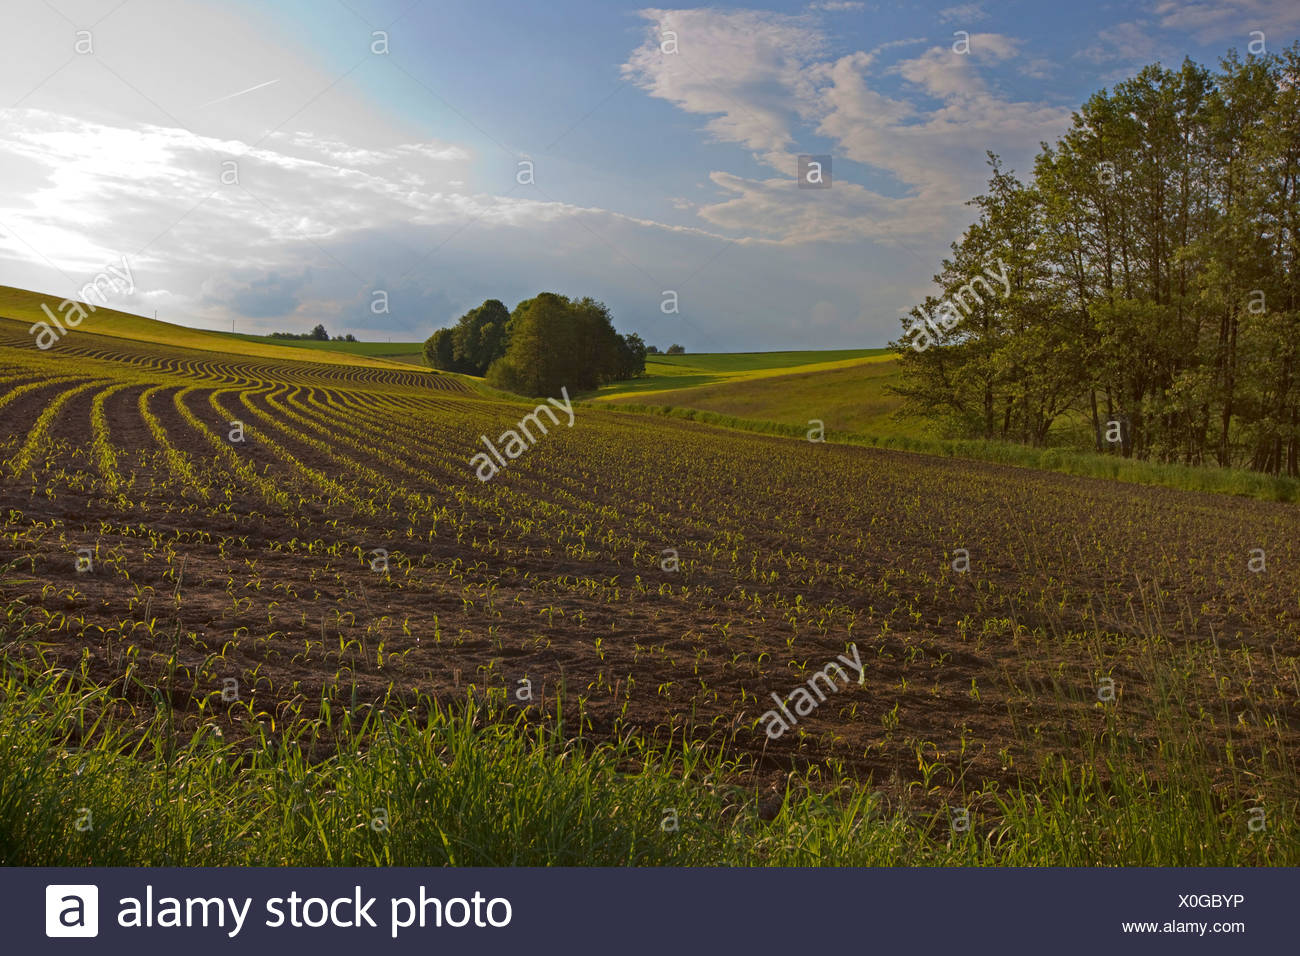 Indian corn, maize (Zea mays), field with seedlings, Germany, Bavaria - Stock Image